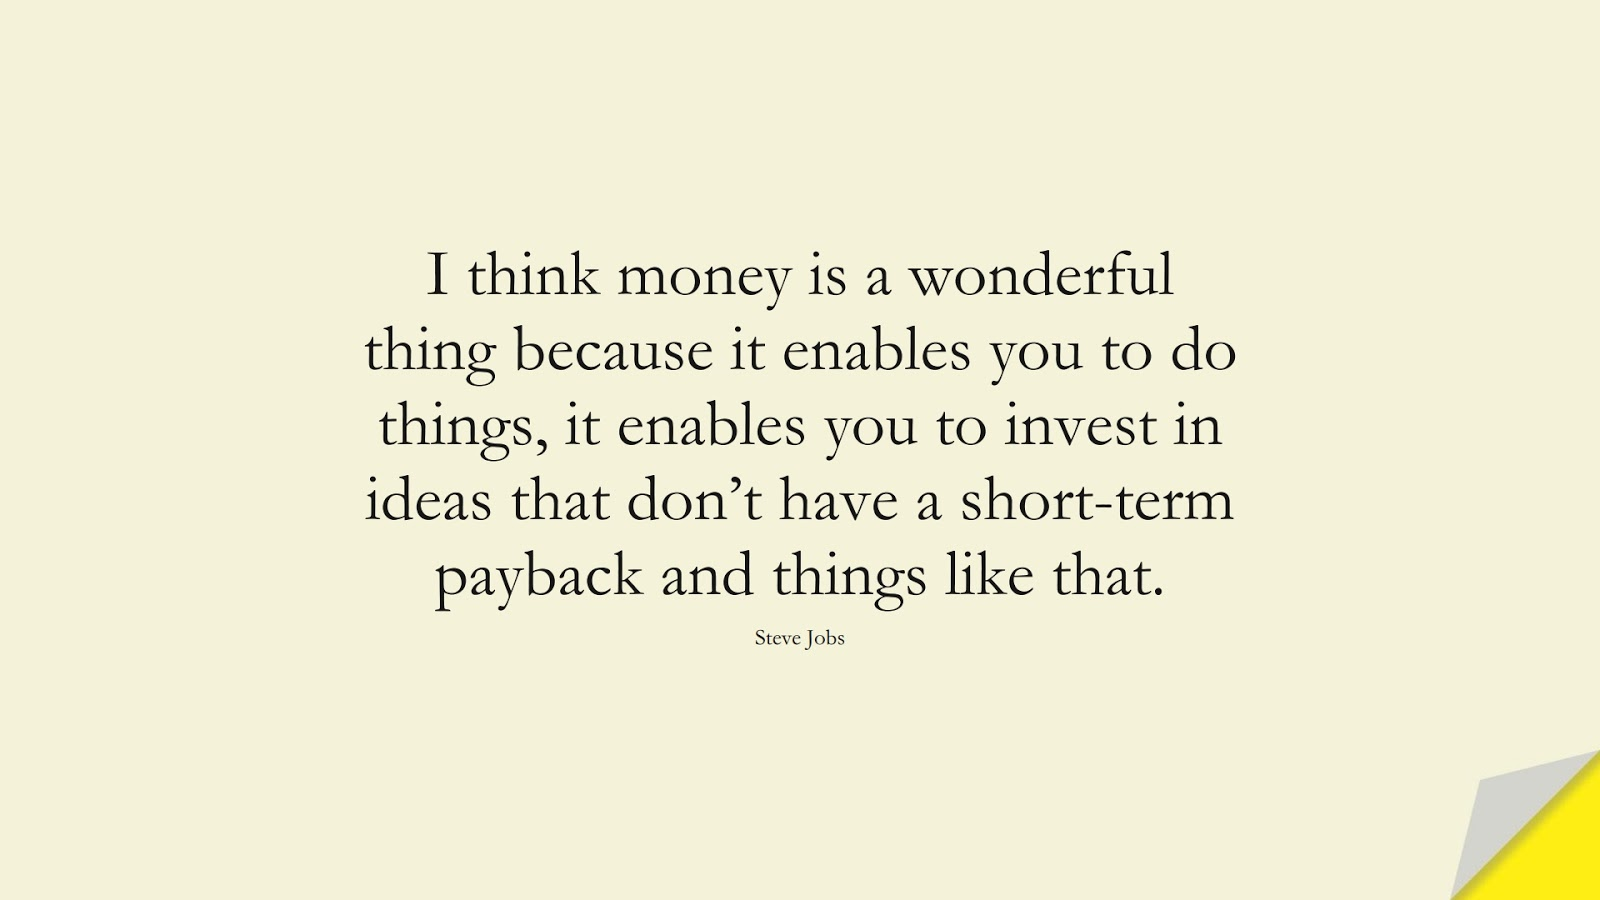 I think money is a wonderful thing because it enables you to do things, it enables you to invest in ideas that don't have a short-term payback and things like that. (Steve Jobs);  #SteveJobsQuotes